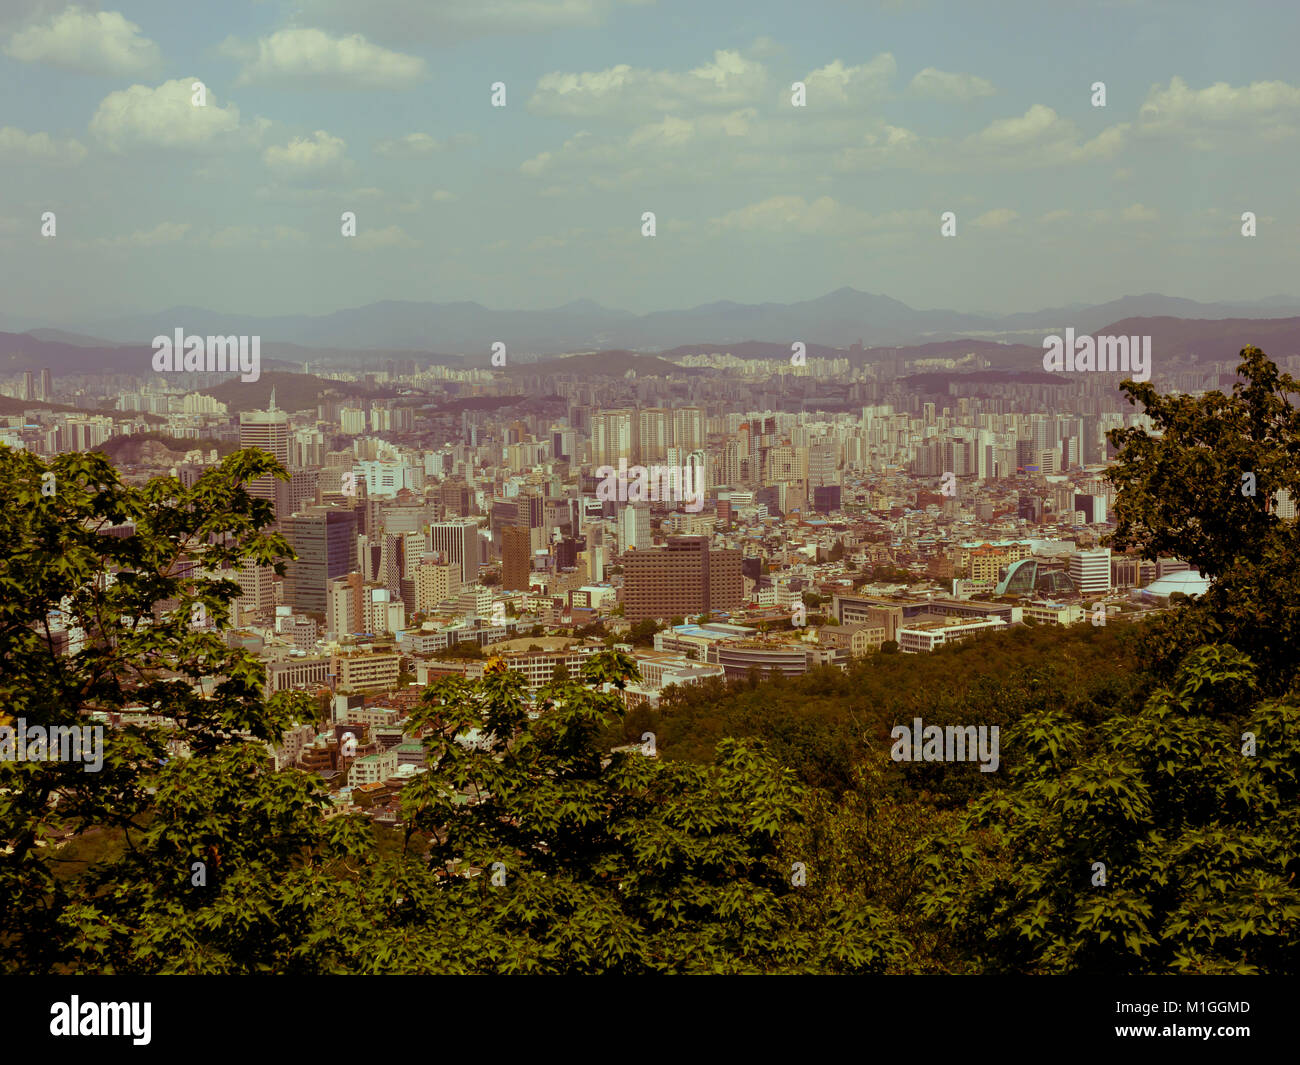 Retro styled view of Seoul from the Namsan Mountain, South Korea. - Stock Image